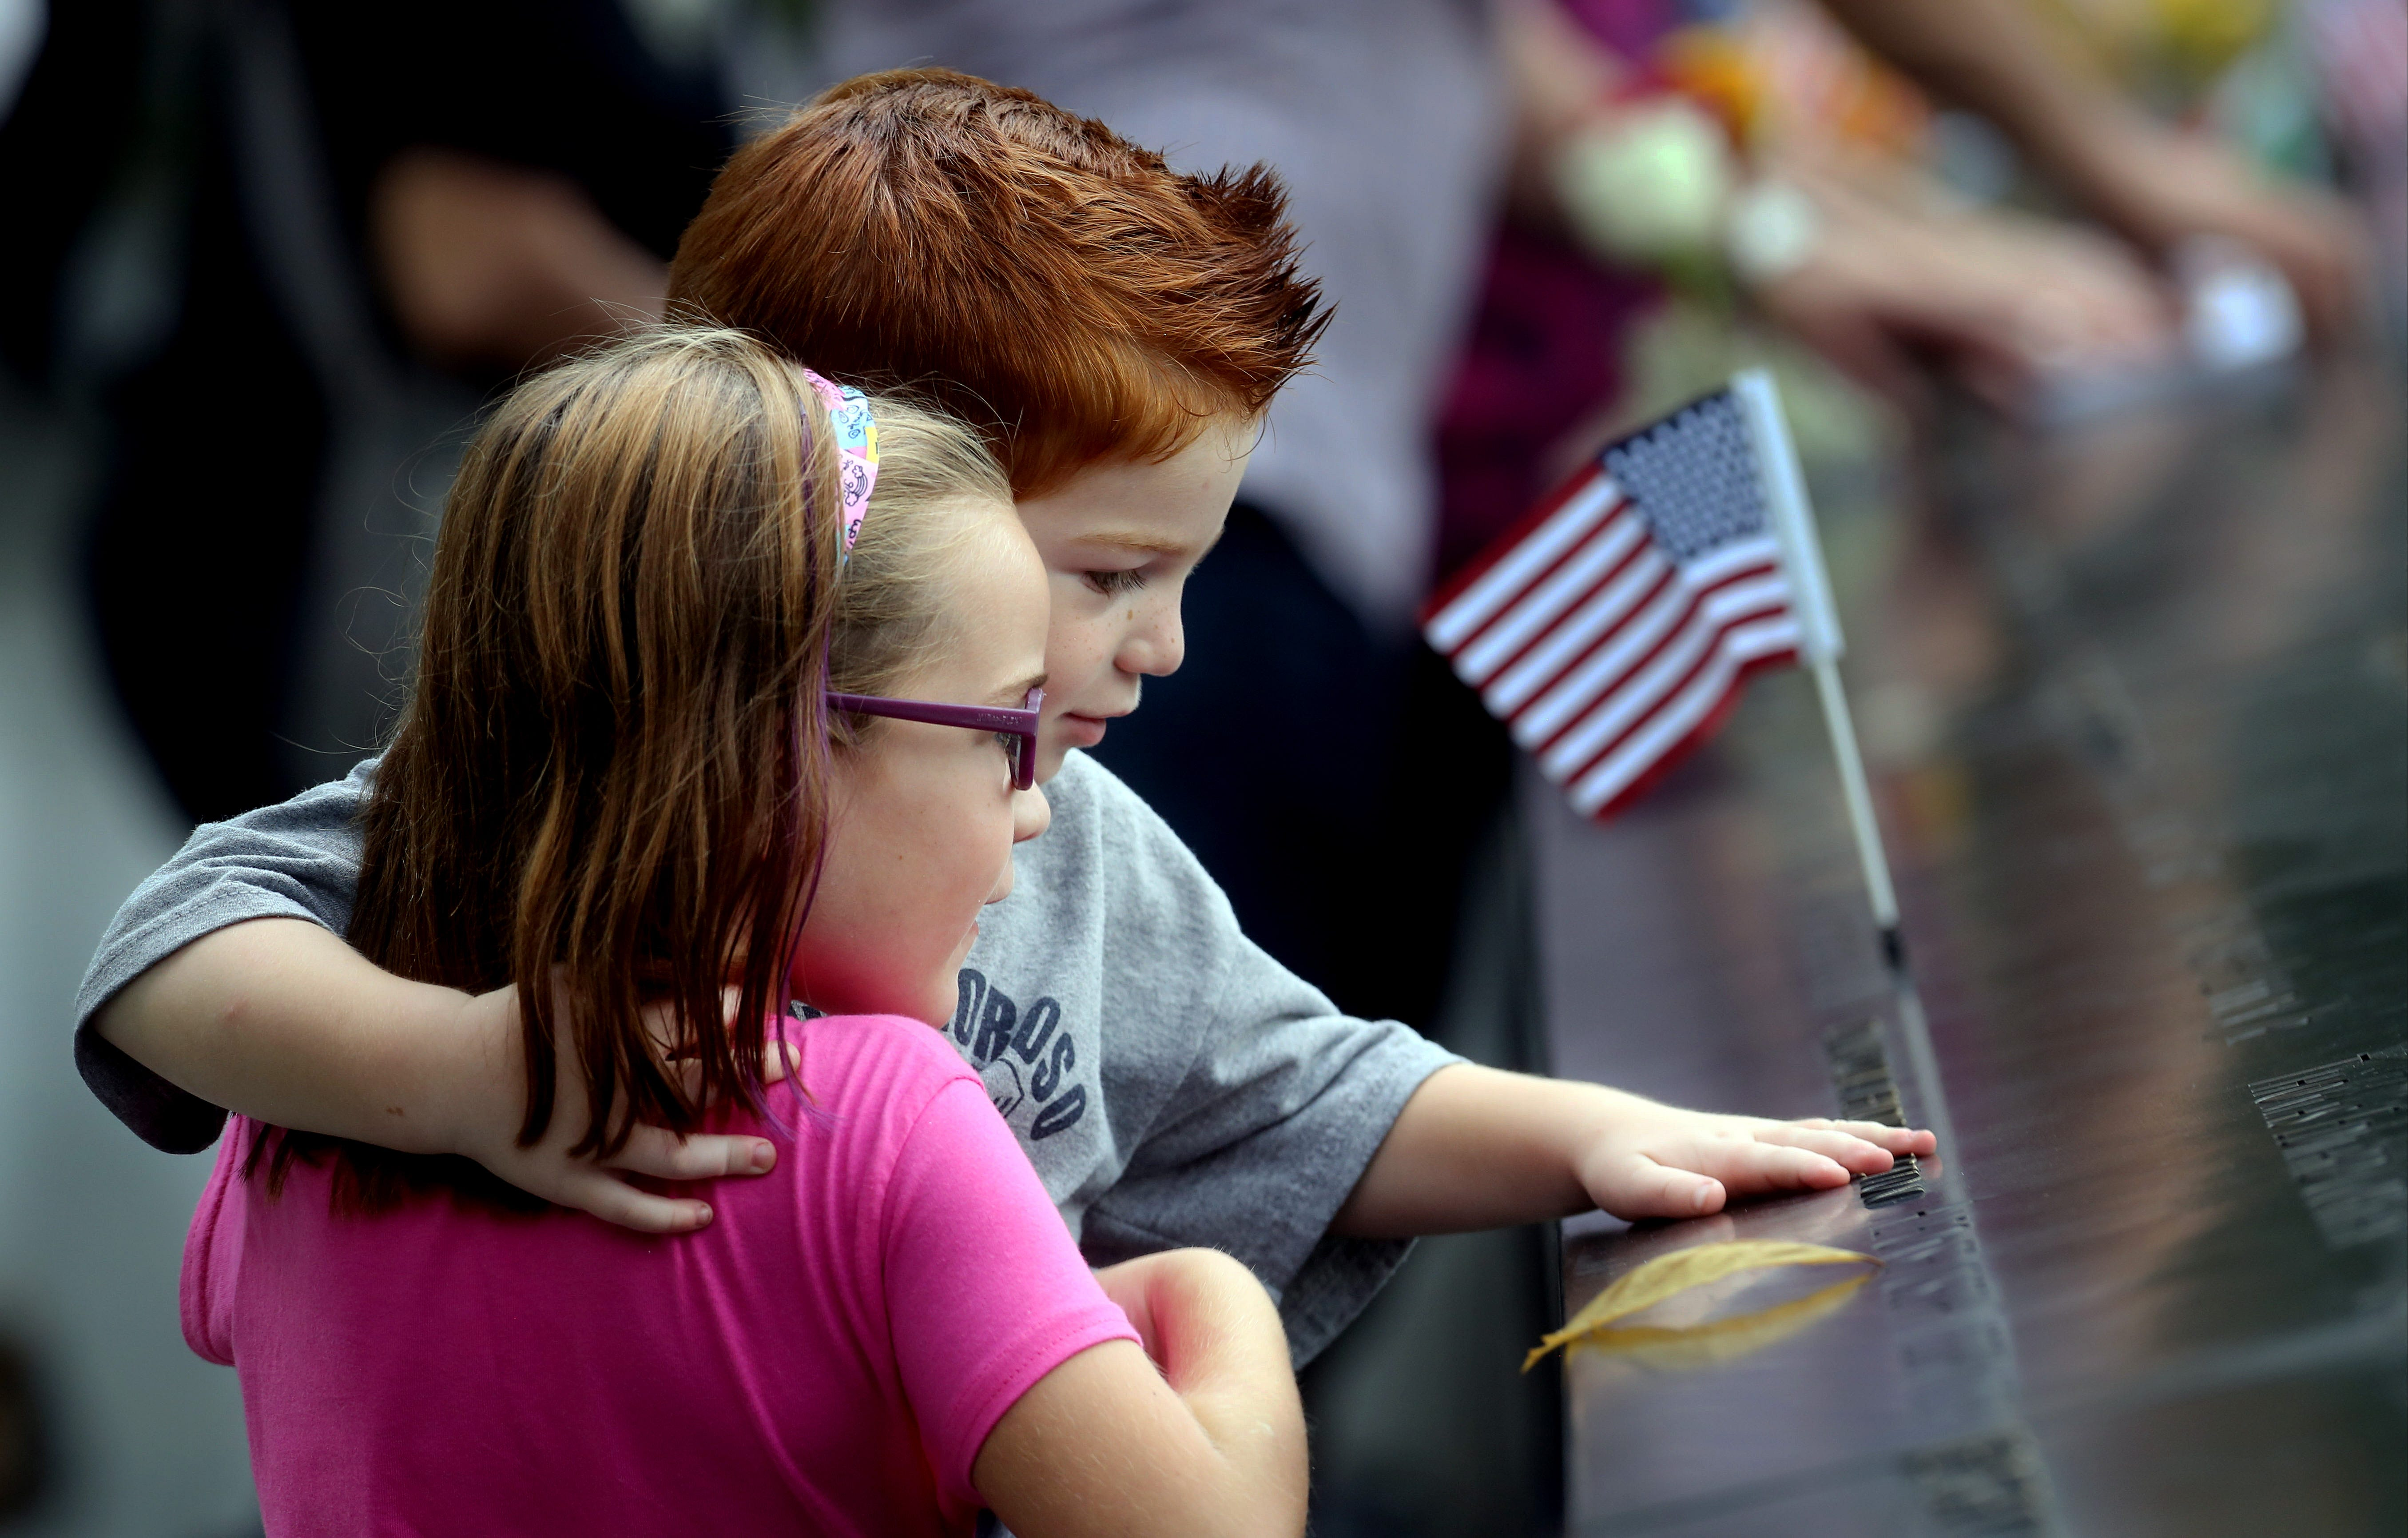 During a ceremony marking the 15th anniversary of the Sept. 11 attacks, Lucy Smith, 6, and her brother Ryan, 2, of New Jersey, look at the name of their uncle, Port Authority Police Officer Chris Amoroso, who was killed in the attacks on the World Trade Center.